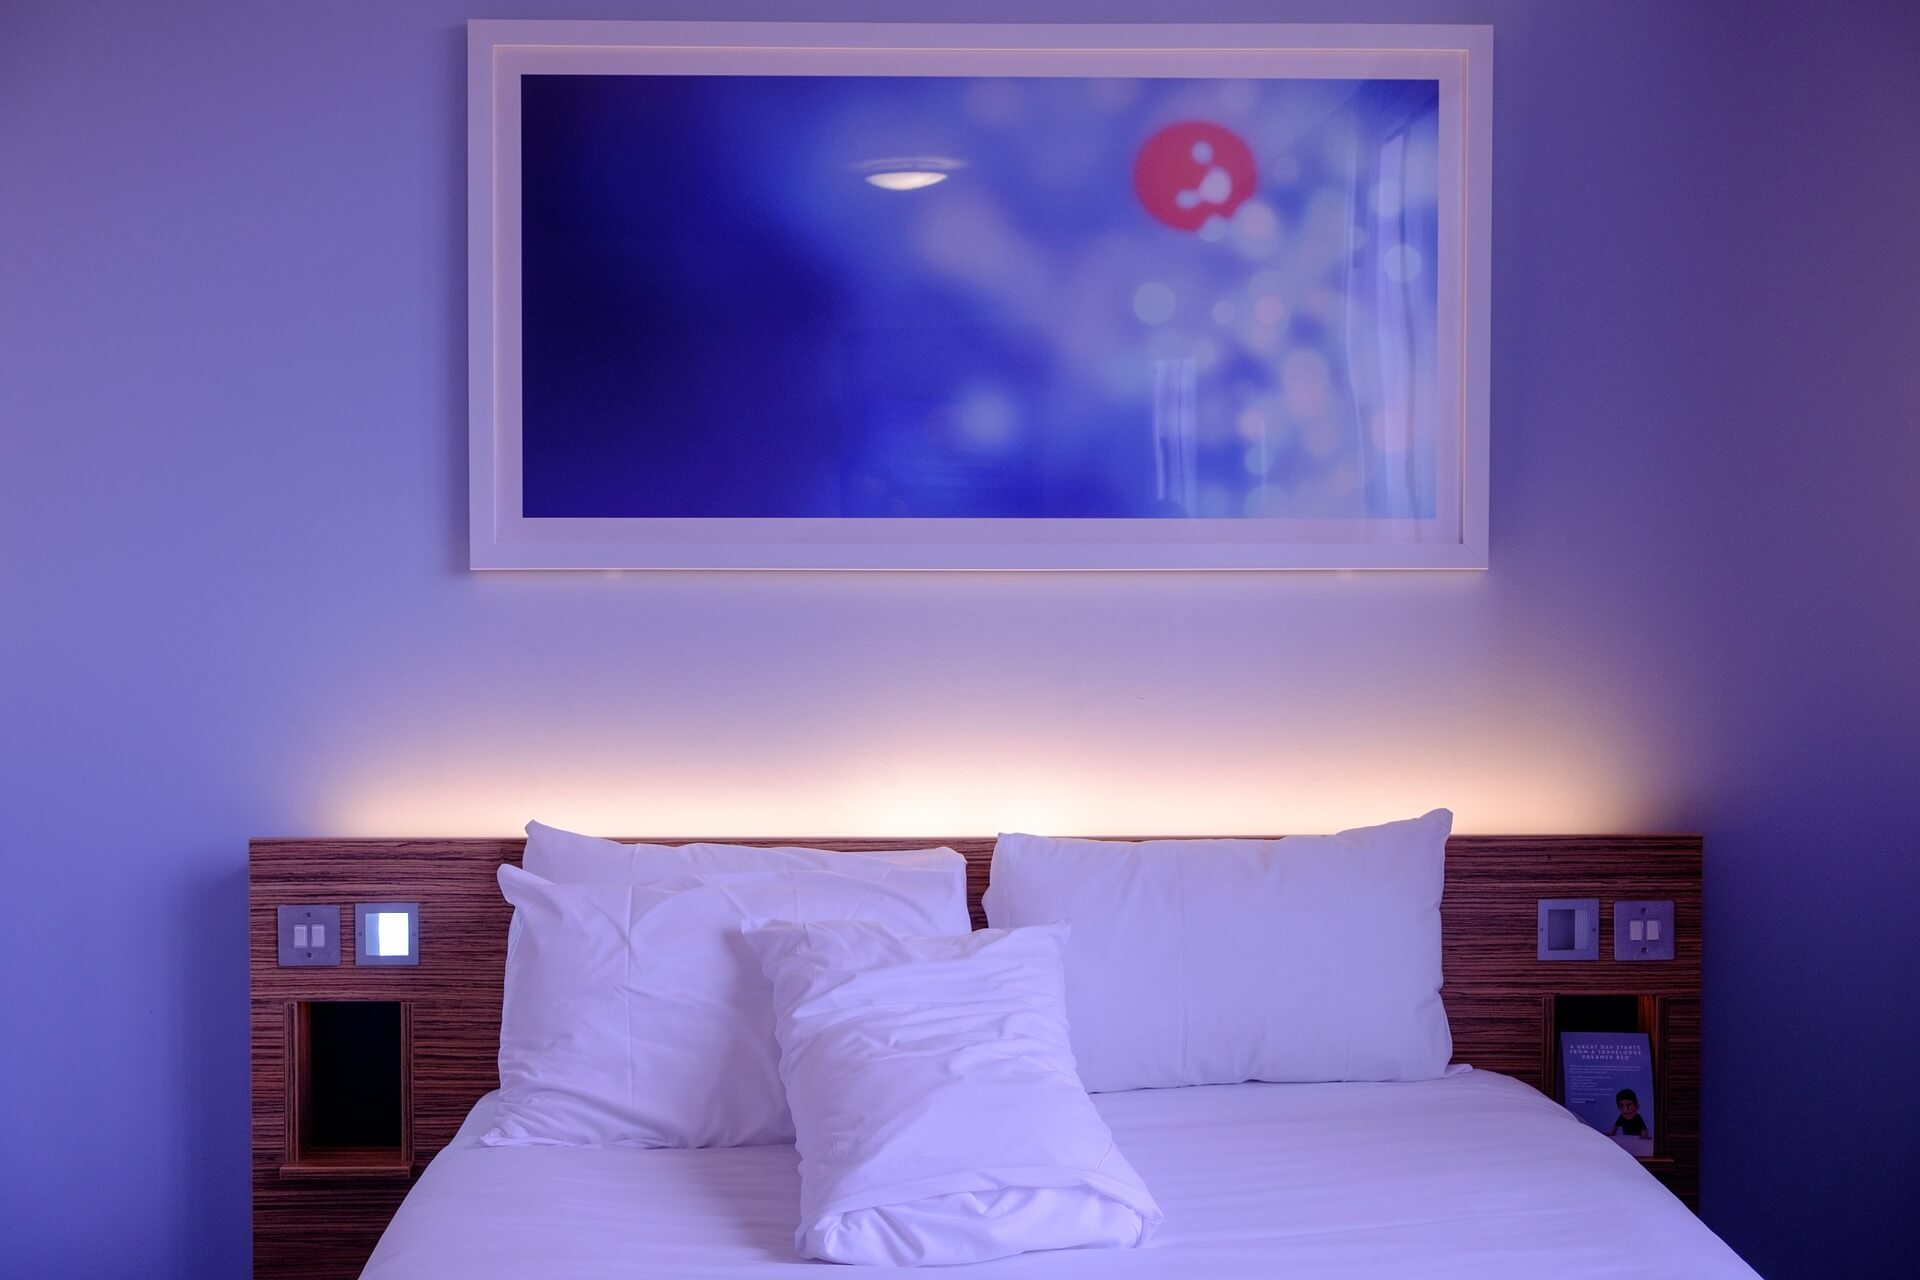 Improve Your Bedroom with LED Lights